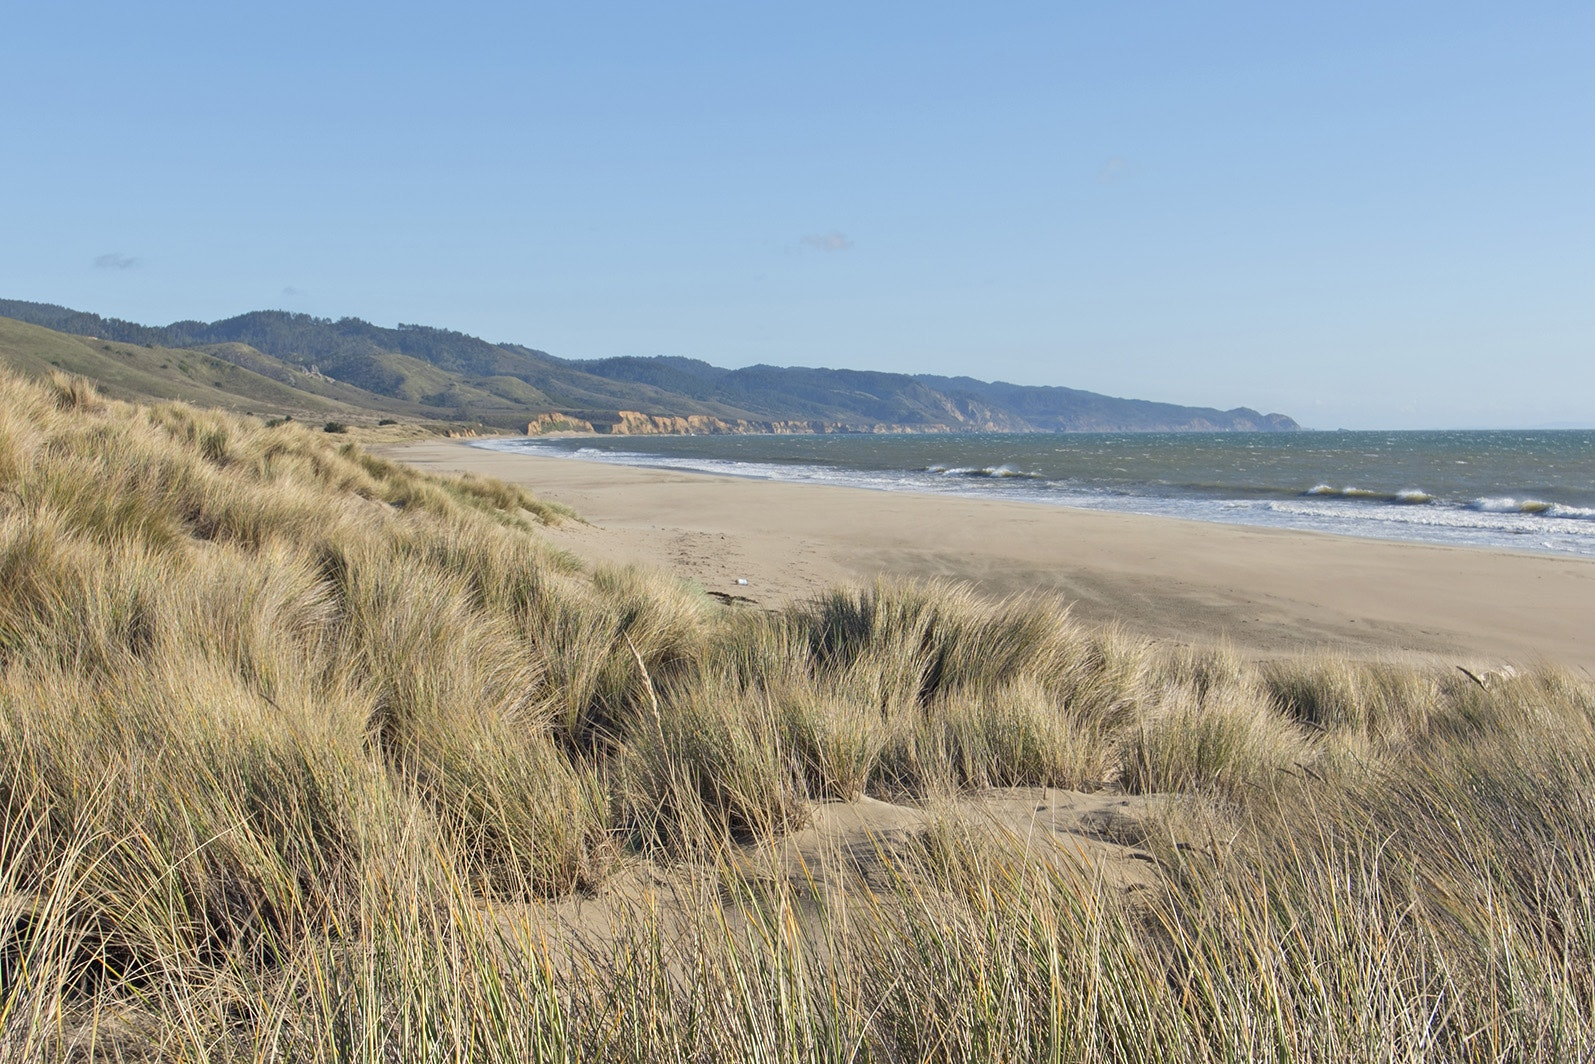 Stroll along the sands of Limantour Beach and collect driftwood for a bonfire at Coast Camp.